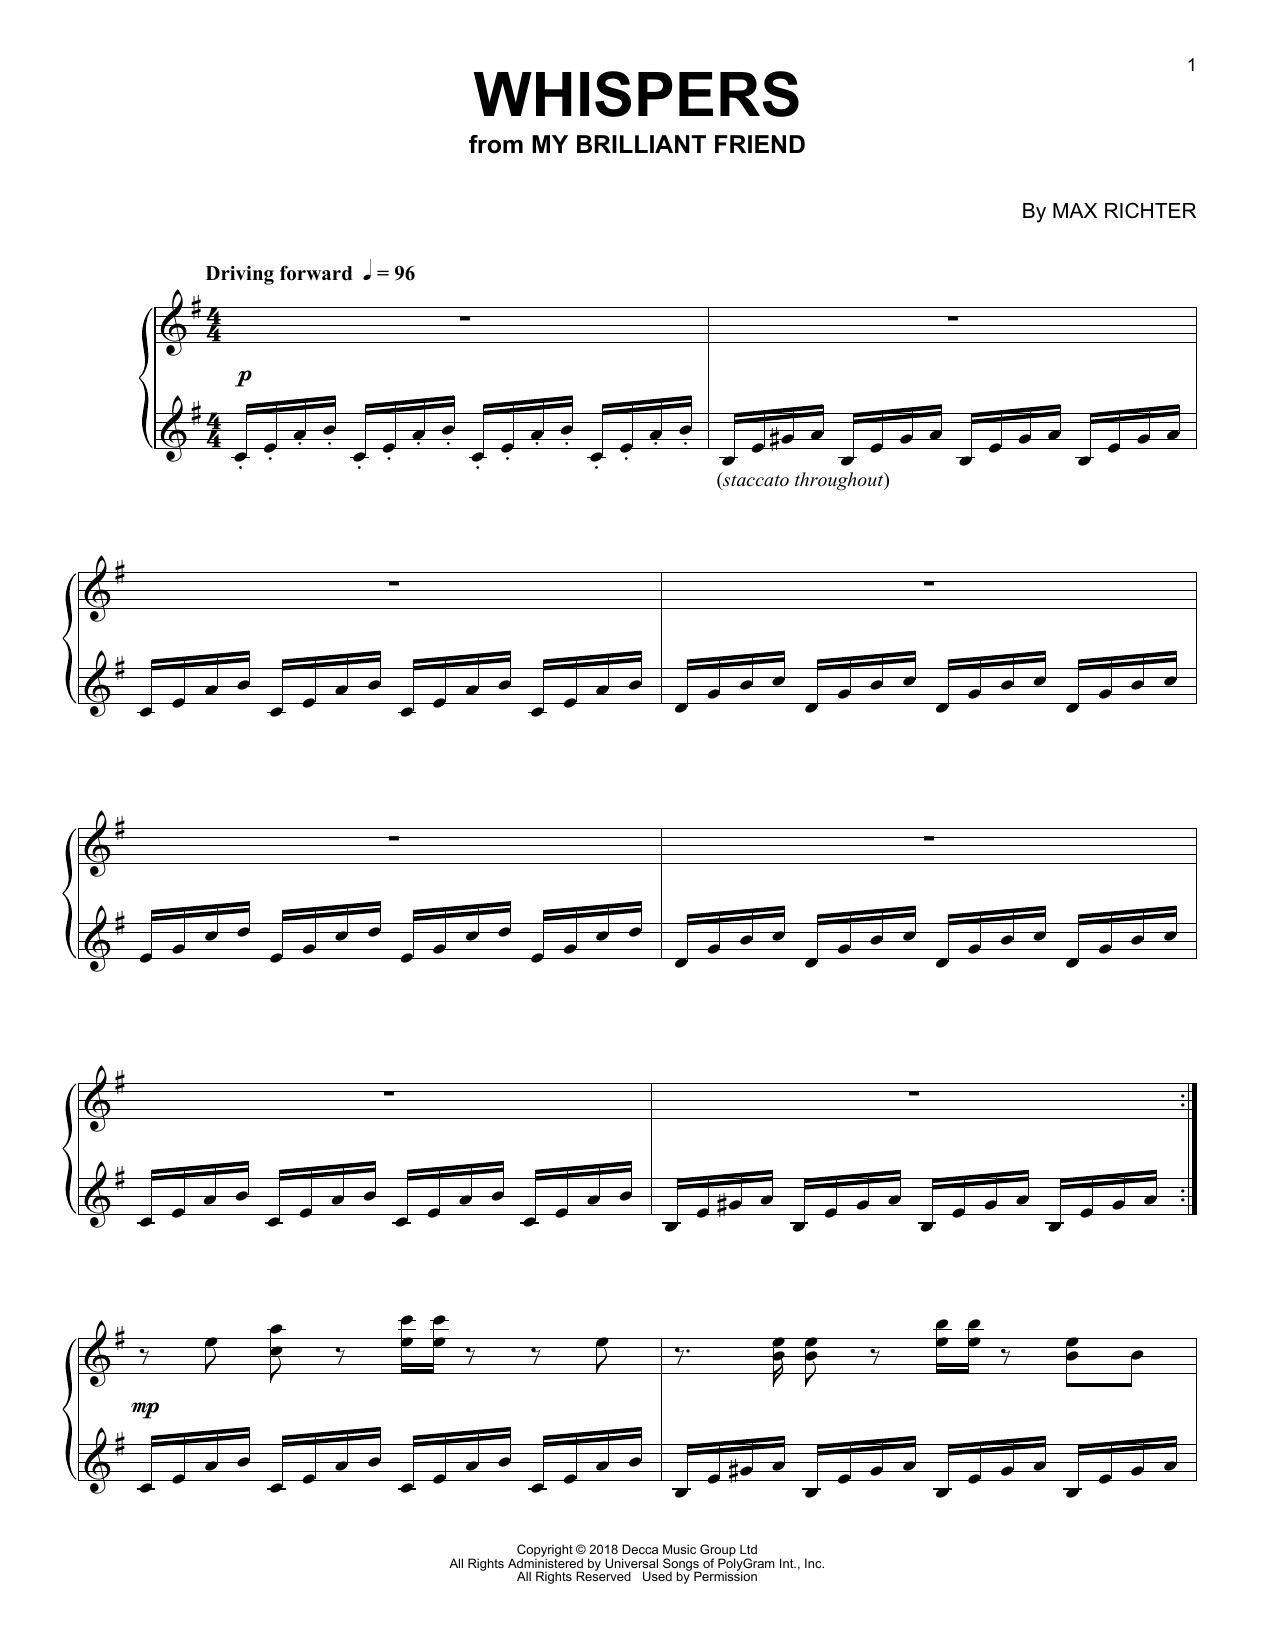 Max Richter Whispers (from My Brilliant Friend) sheet music notes and chords. Download Printable PDF.